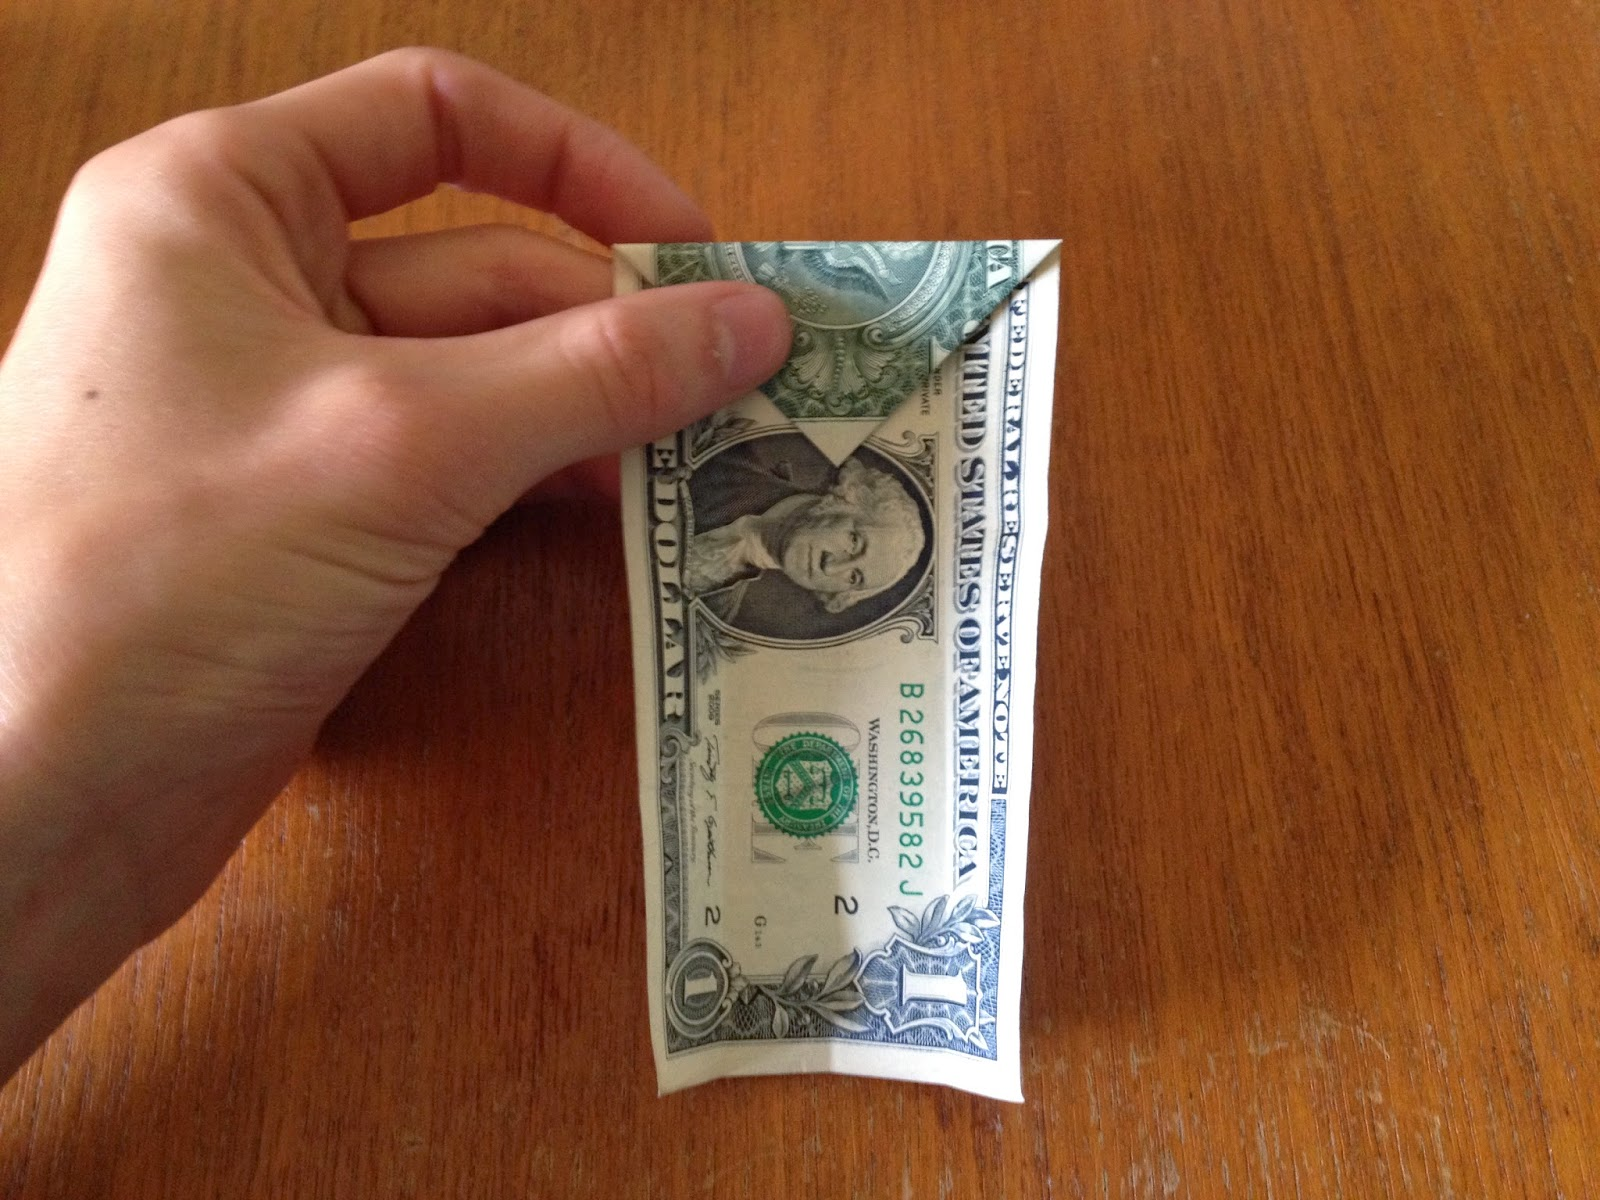 Dollar Bill Origami: Shirt and Tie | The Best Hobbies Blog - photo#42